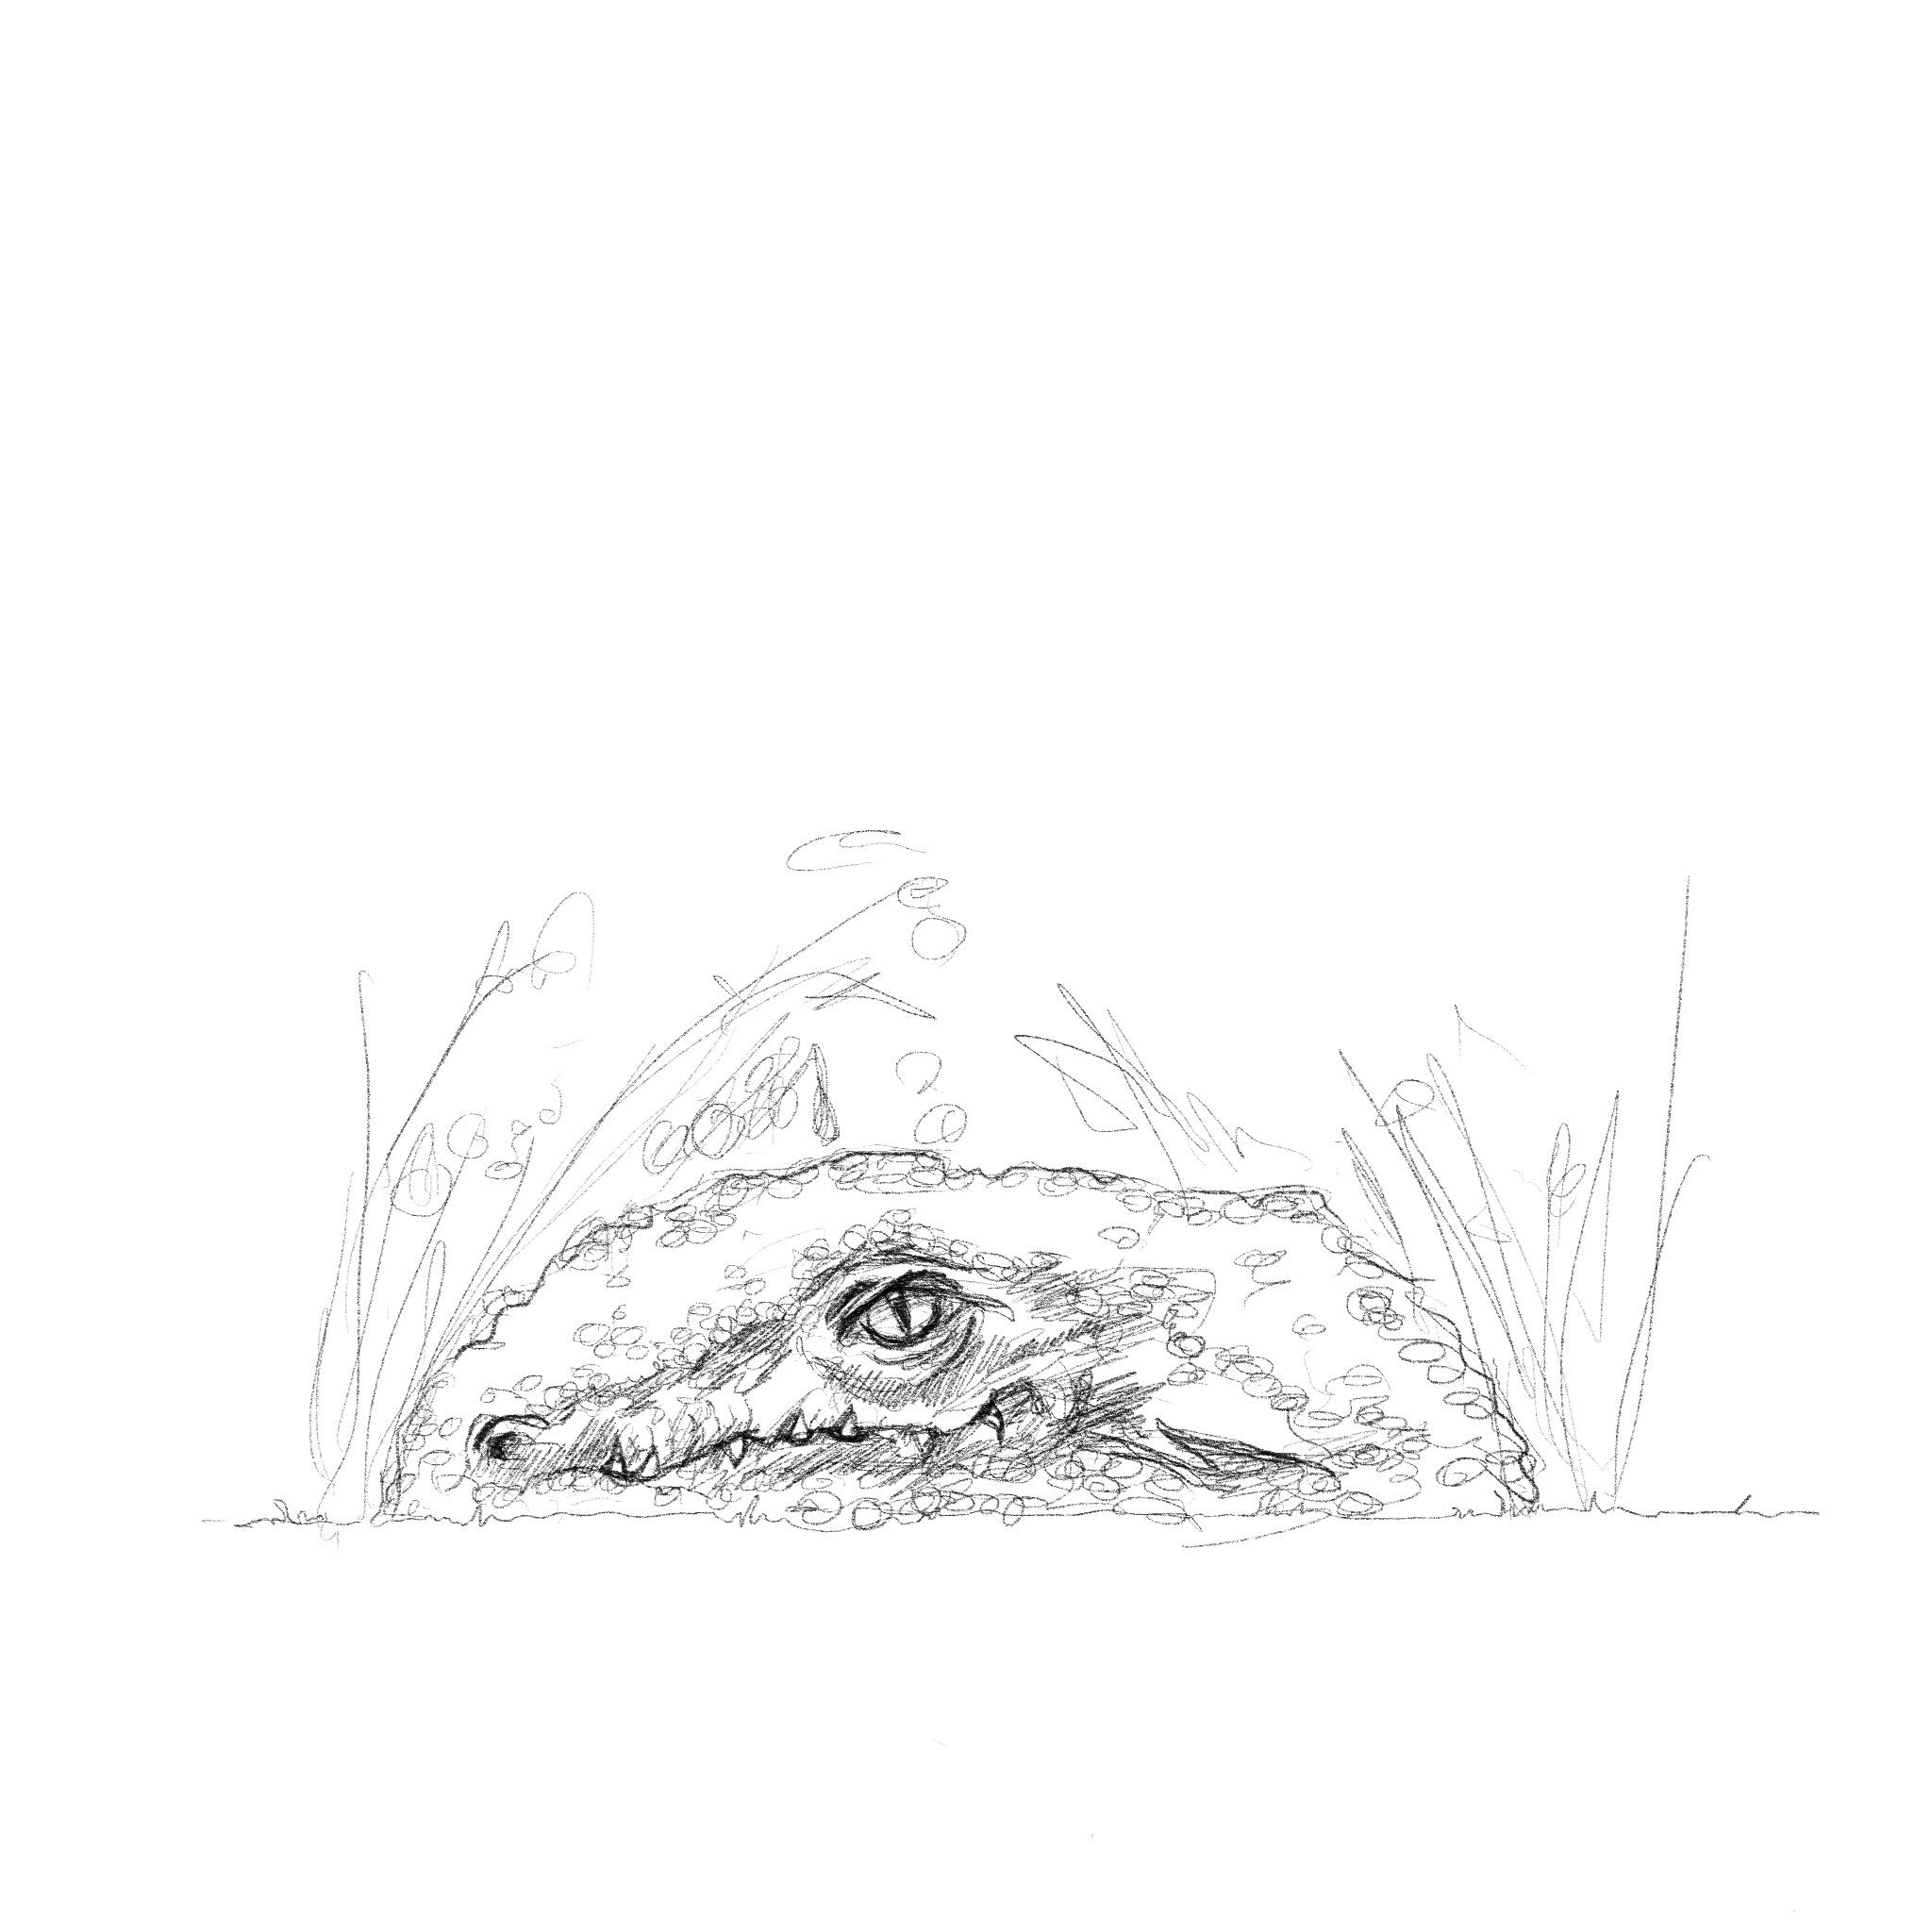 sketch of a crocodile emerging from long grass. the sketch is a proposal by sculpture simon o'rourke. sketches like this are a vital part in commissioning the best sculpture.